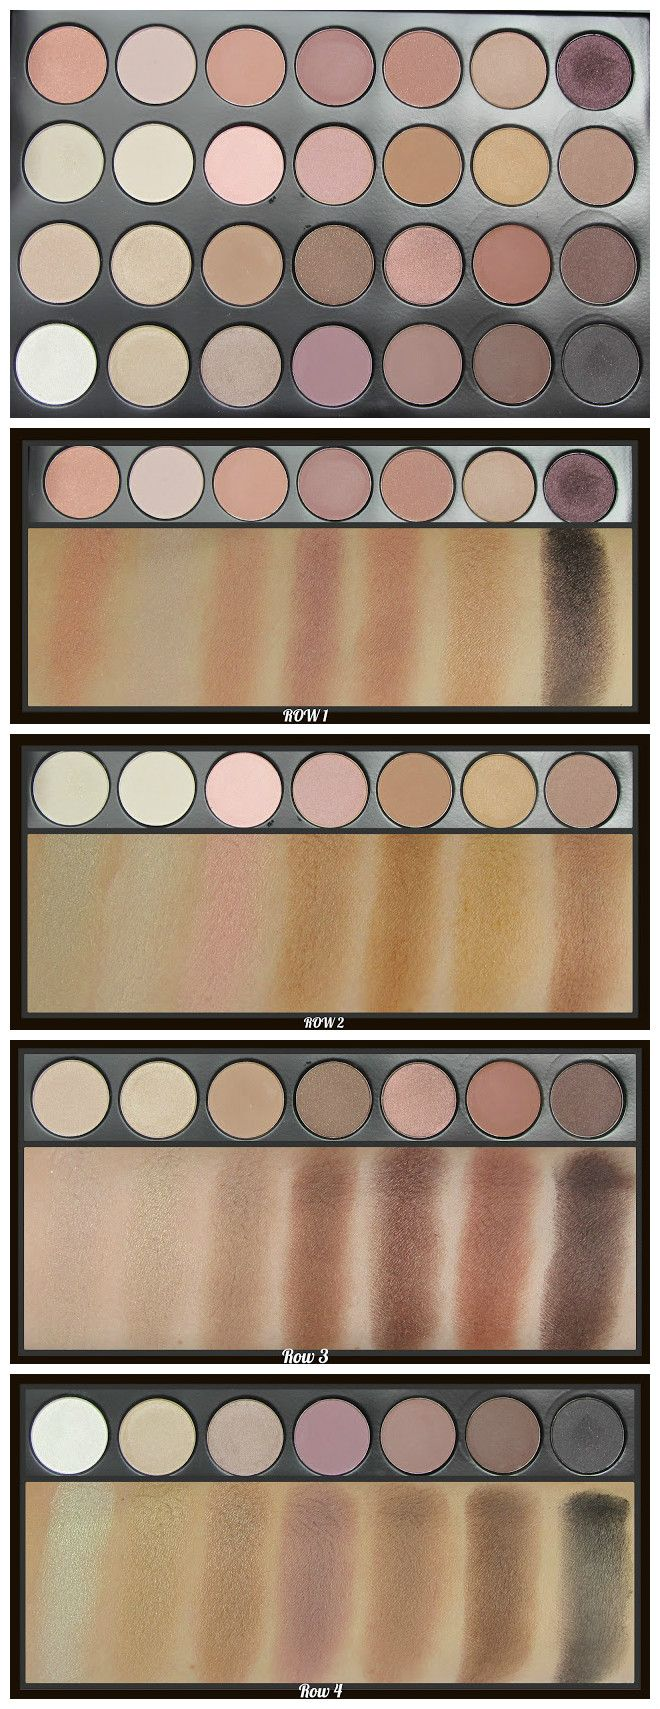 Bh cosmetics 28 neutral palette review swatches for Modern neutrals palette